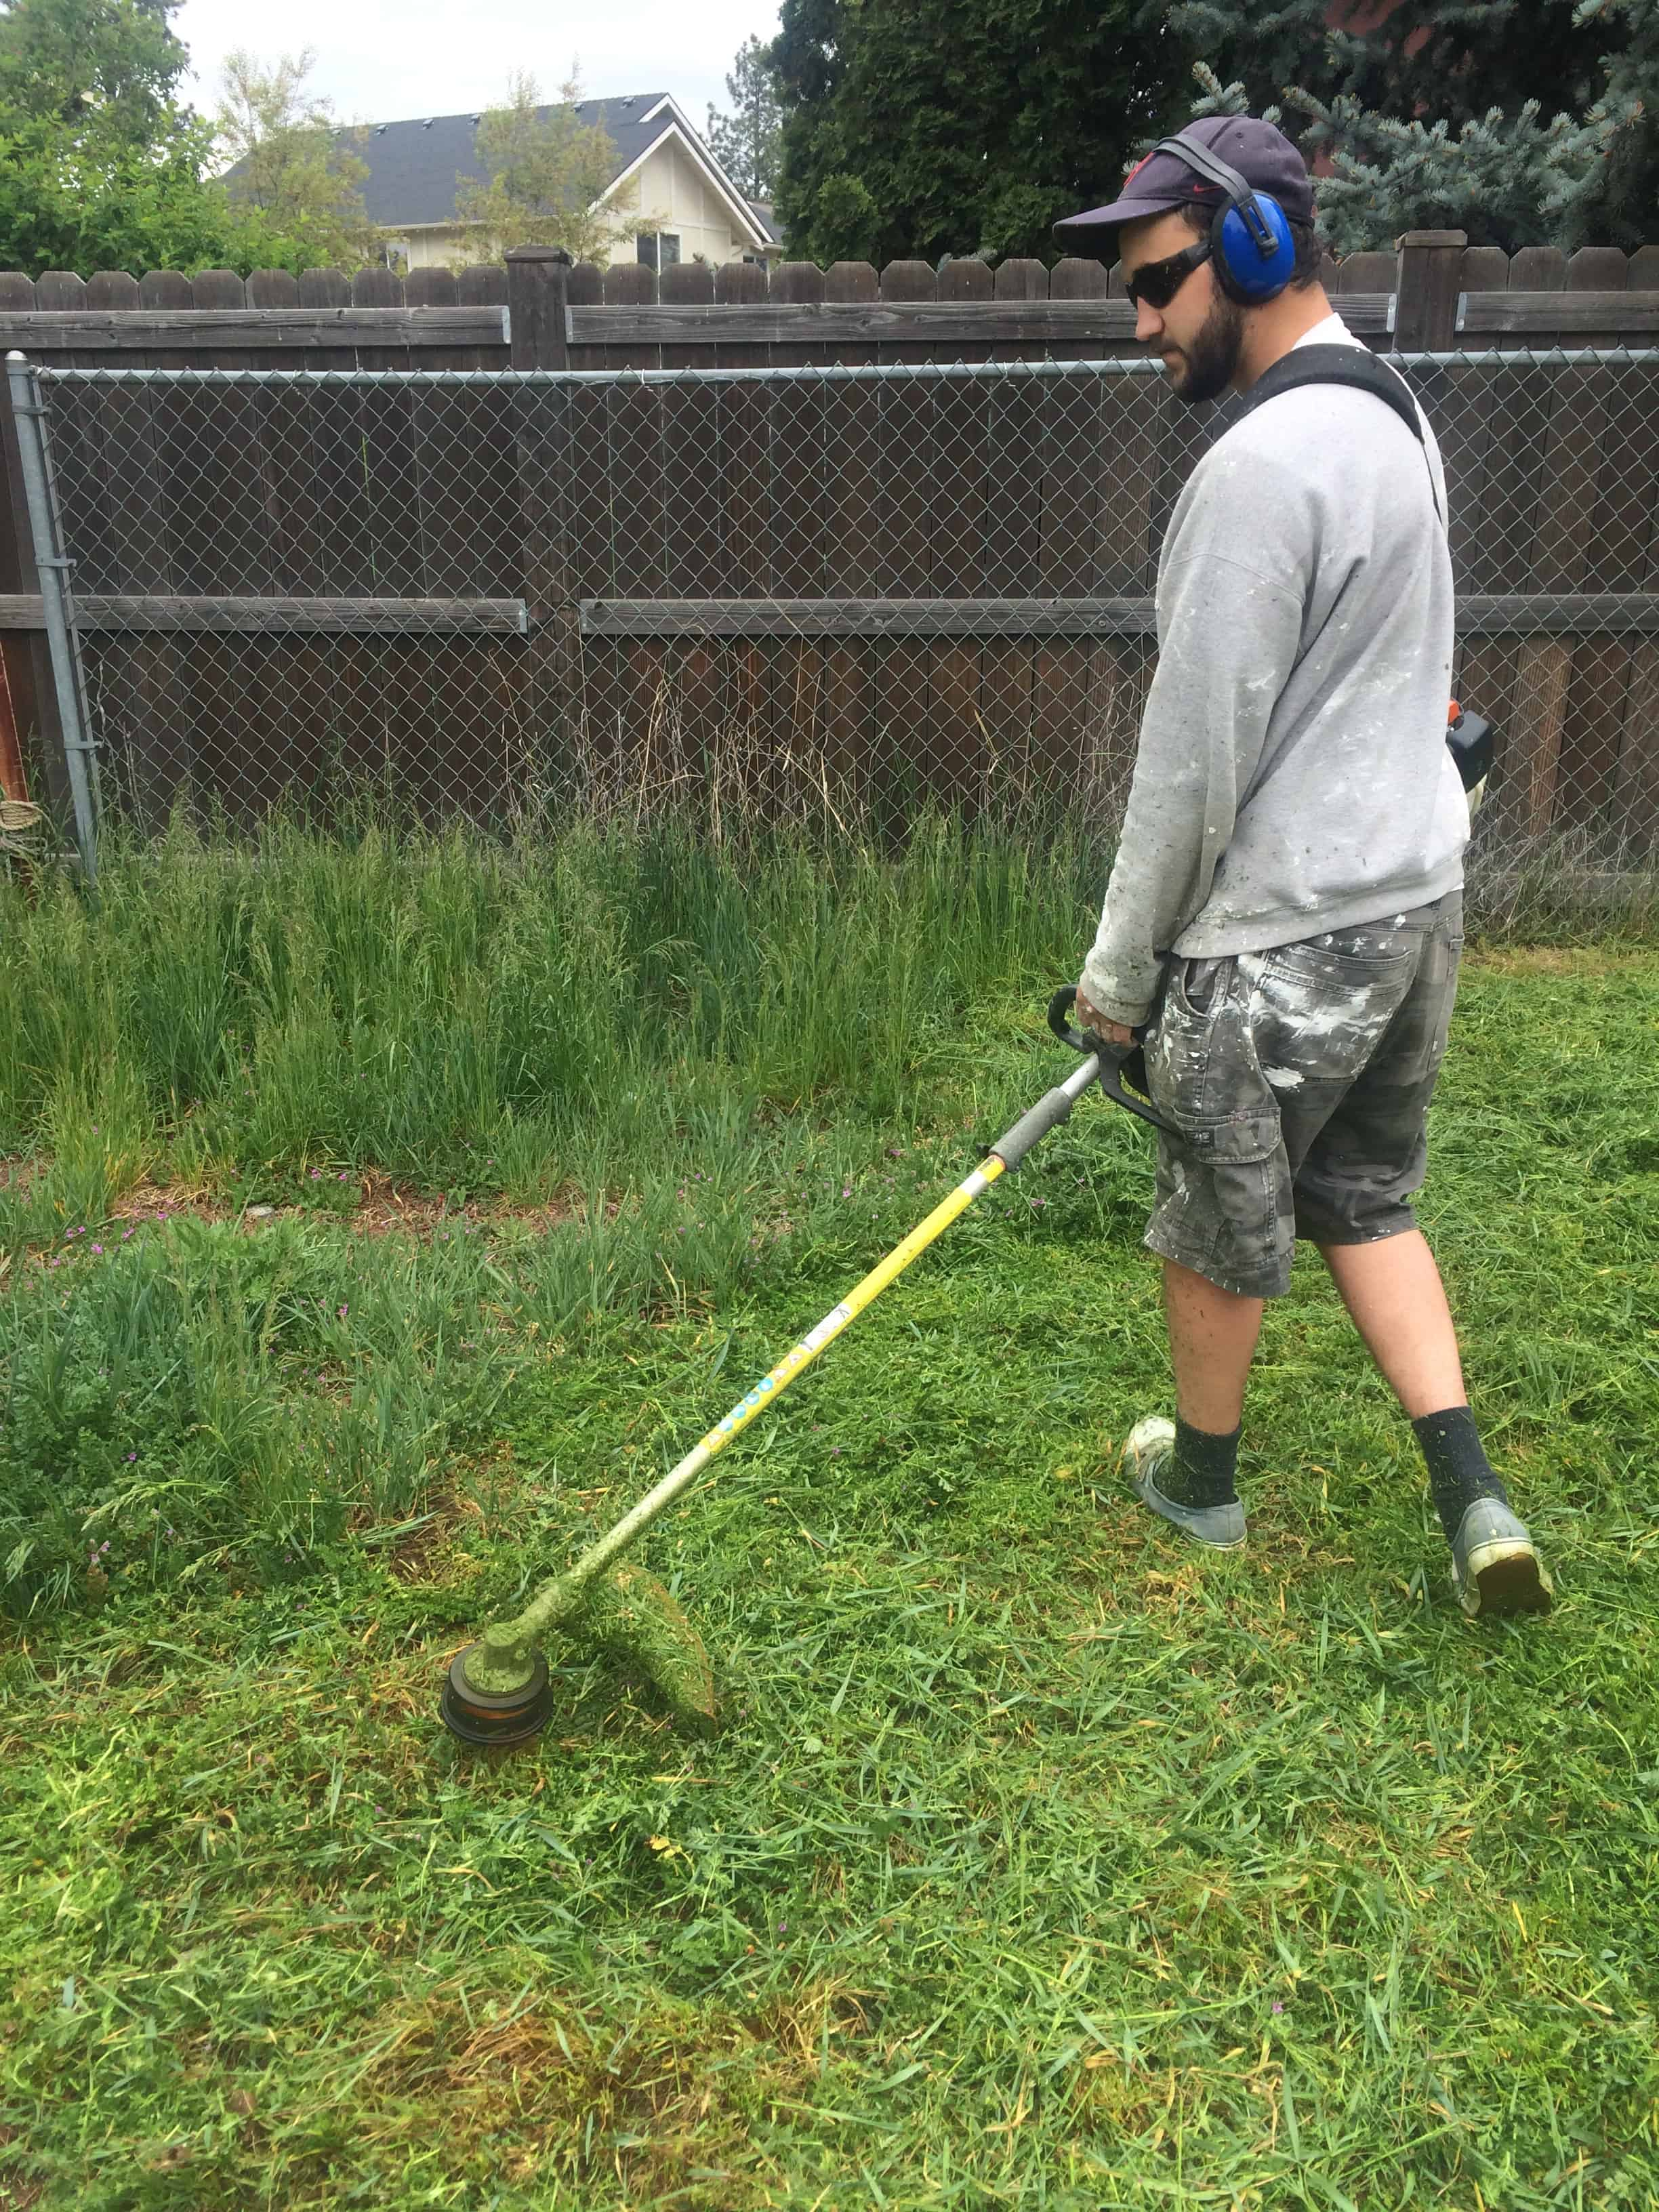 Man using weed wacker in backyard